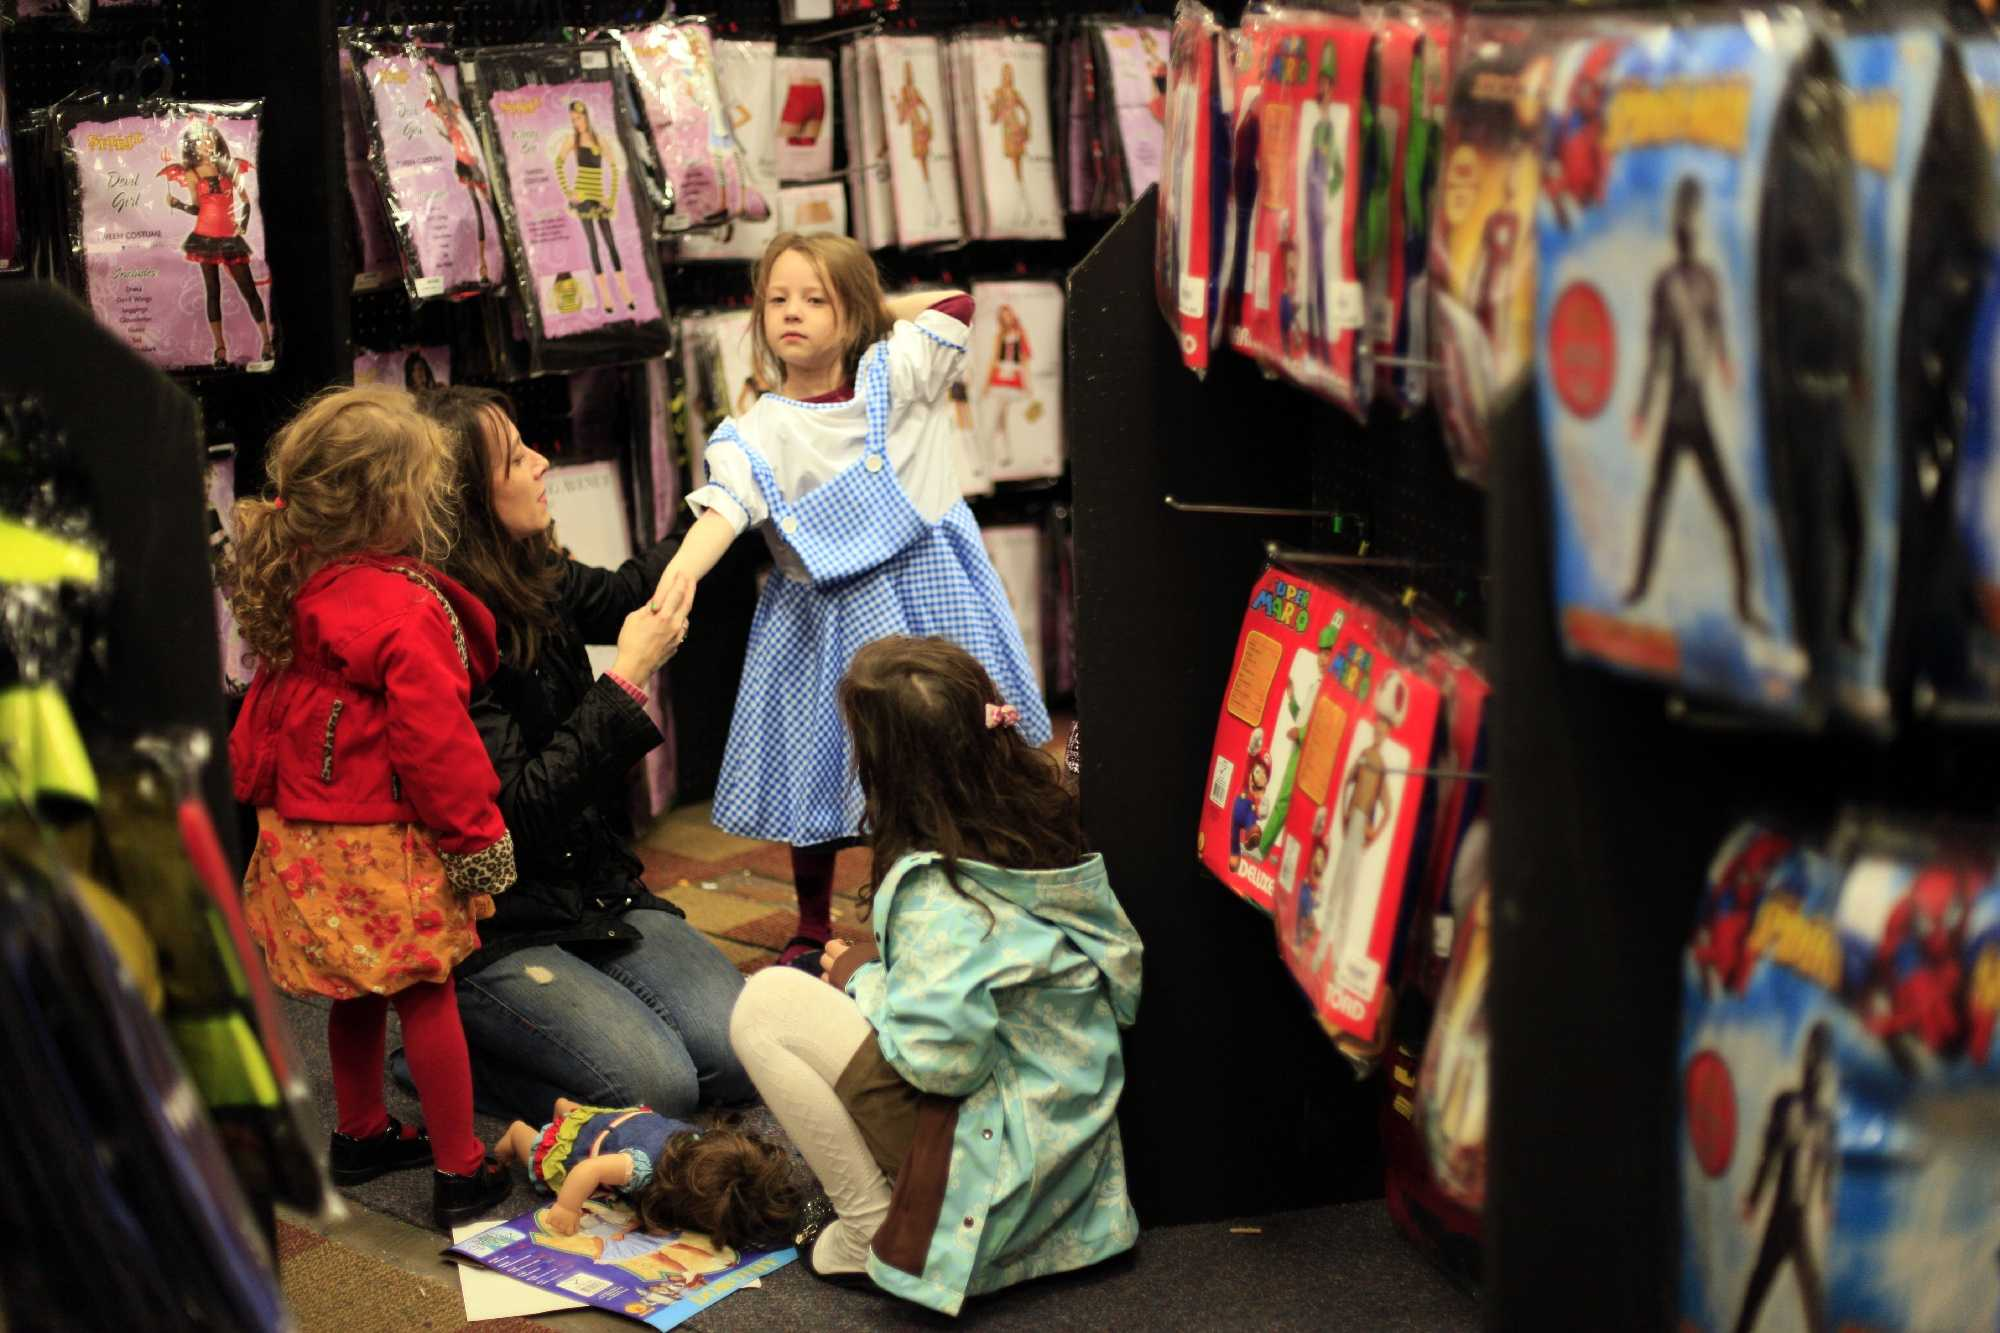 Halloween costumes: Princess falls to No. 2 after 11 years on the ...